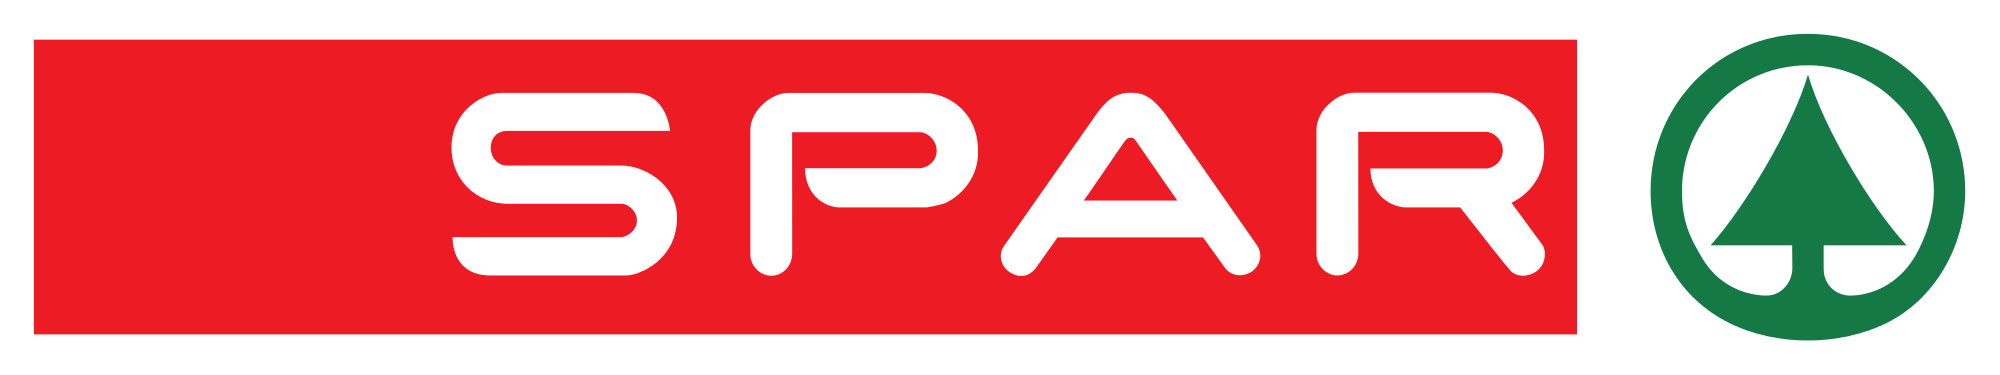 Spar Logo transparent PNG.